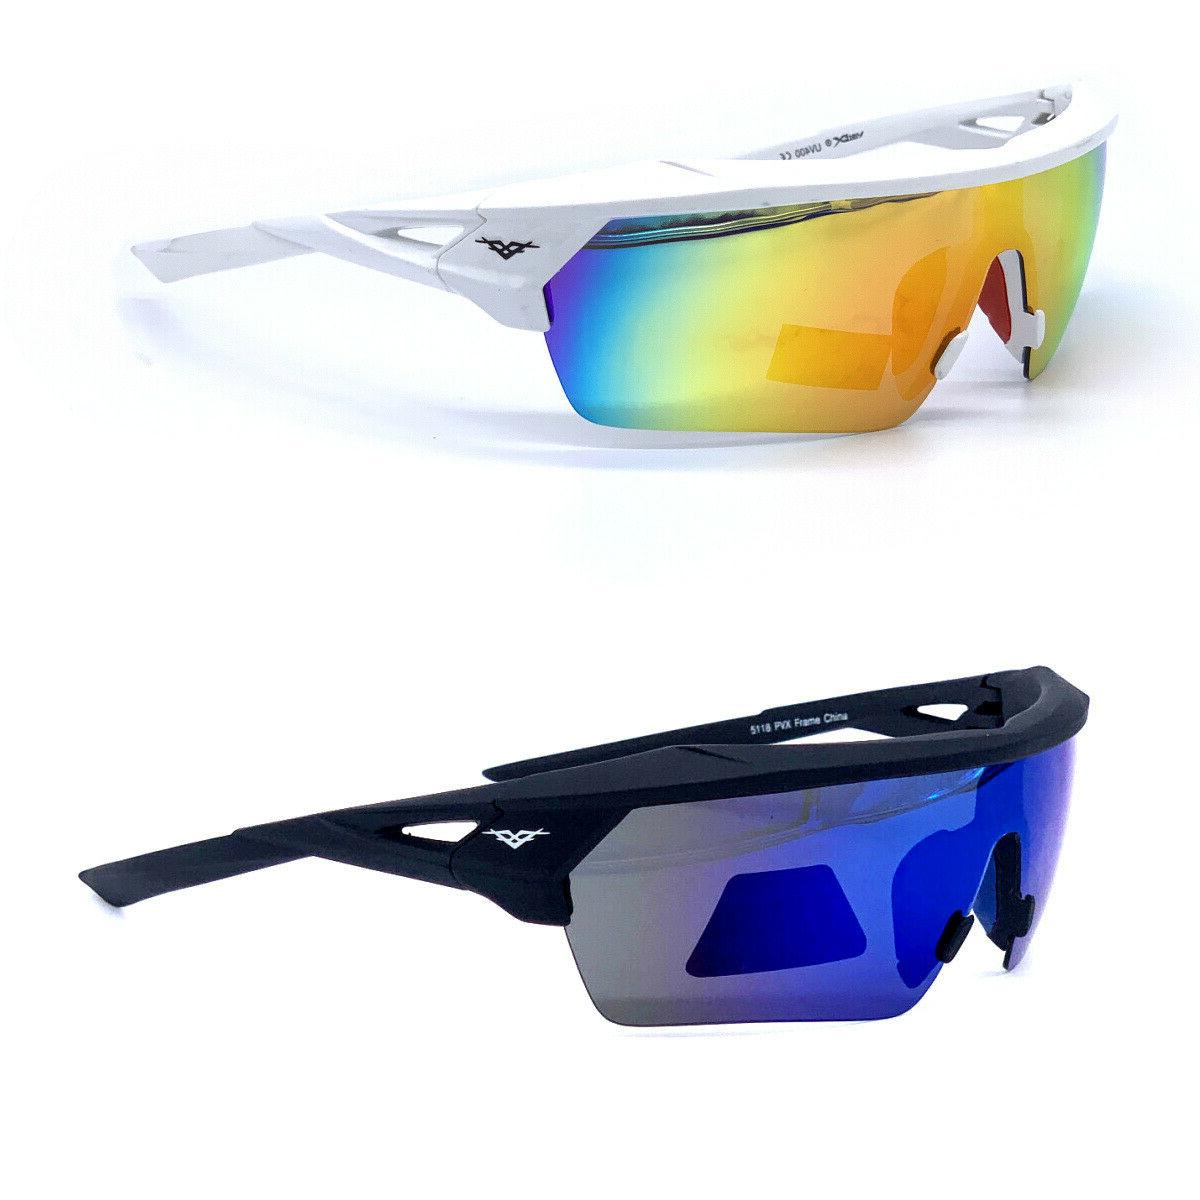 premium sport polarized sunglasses new wrap around